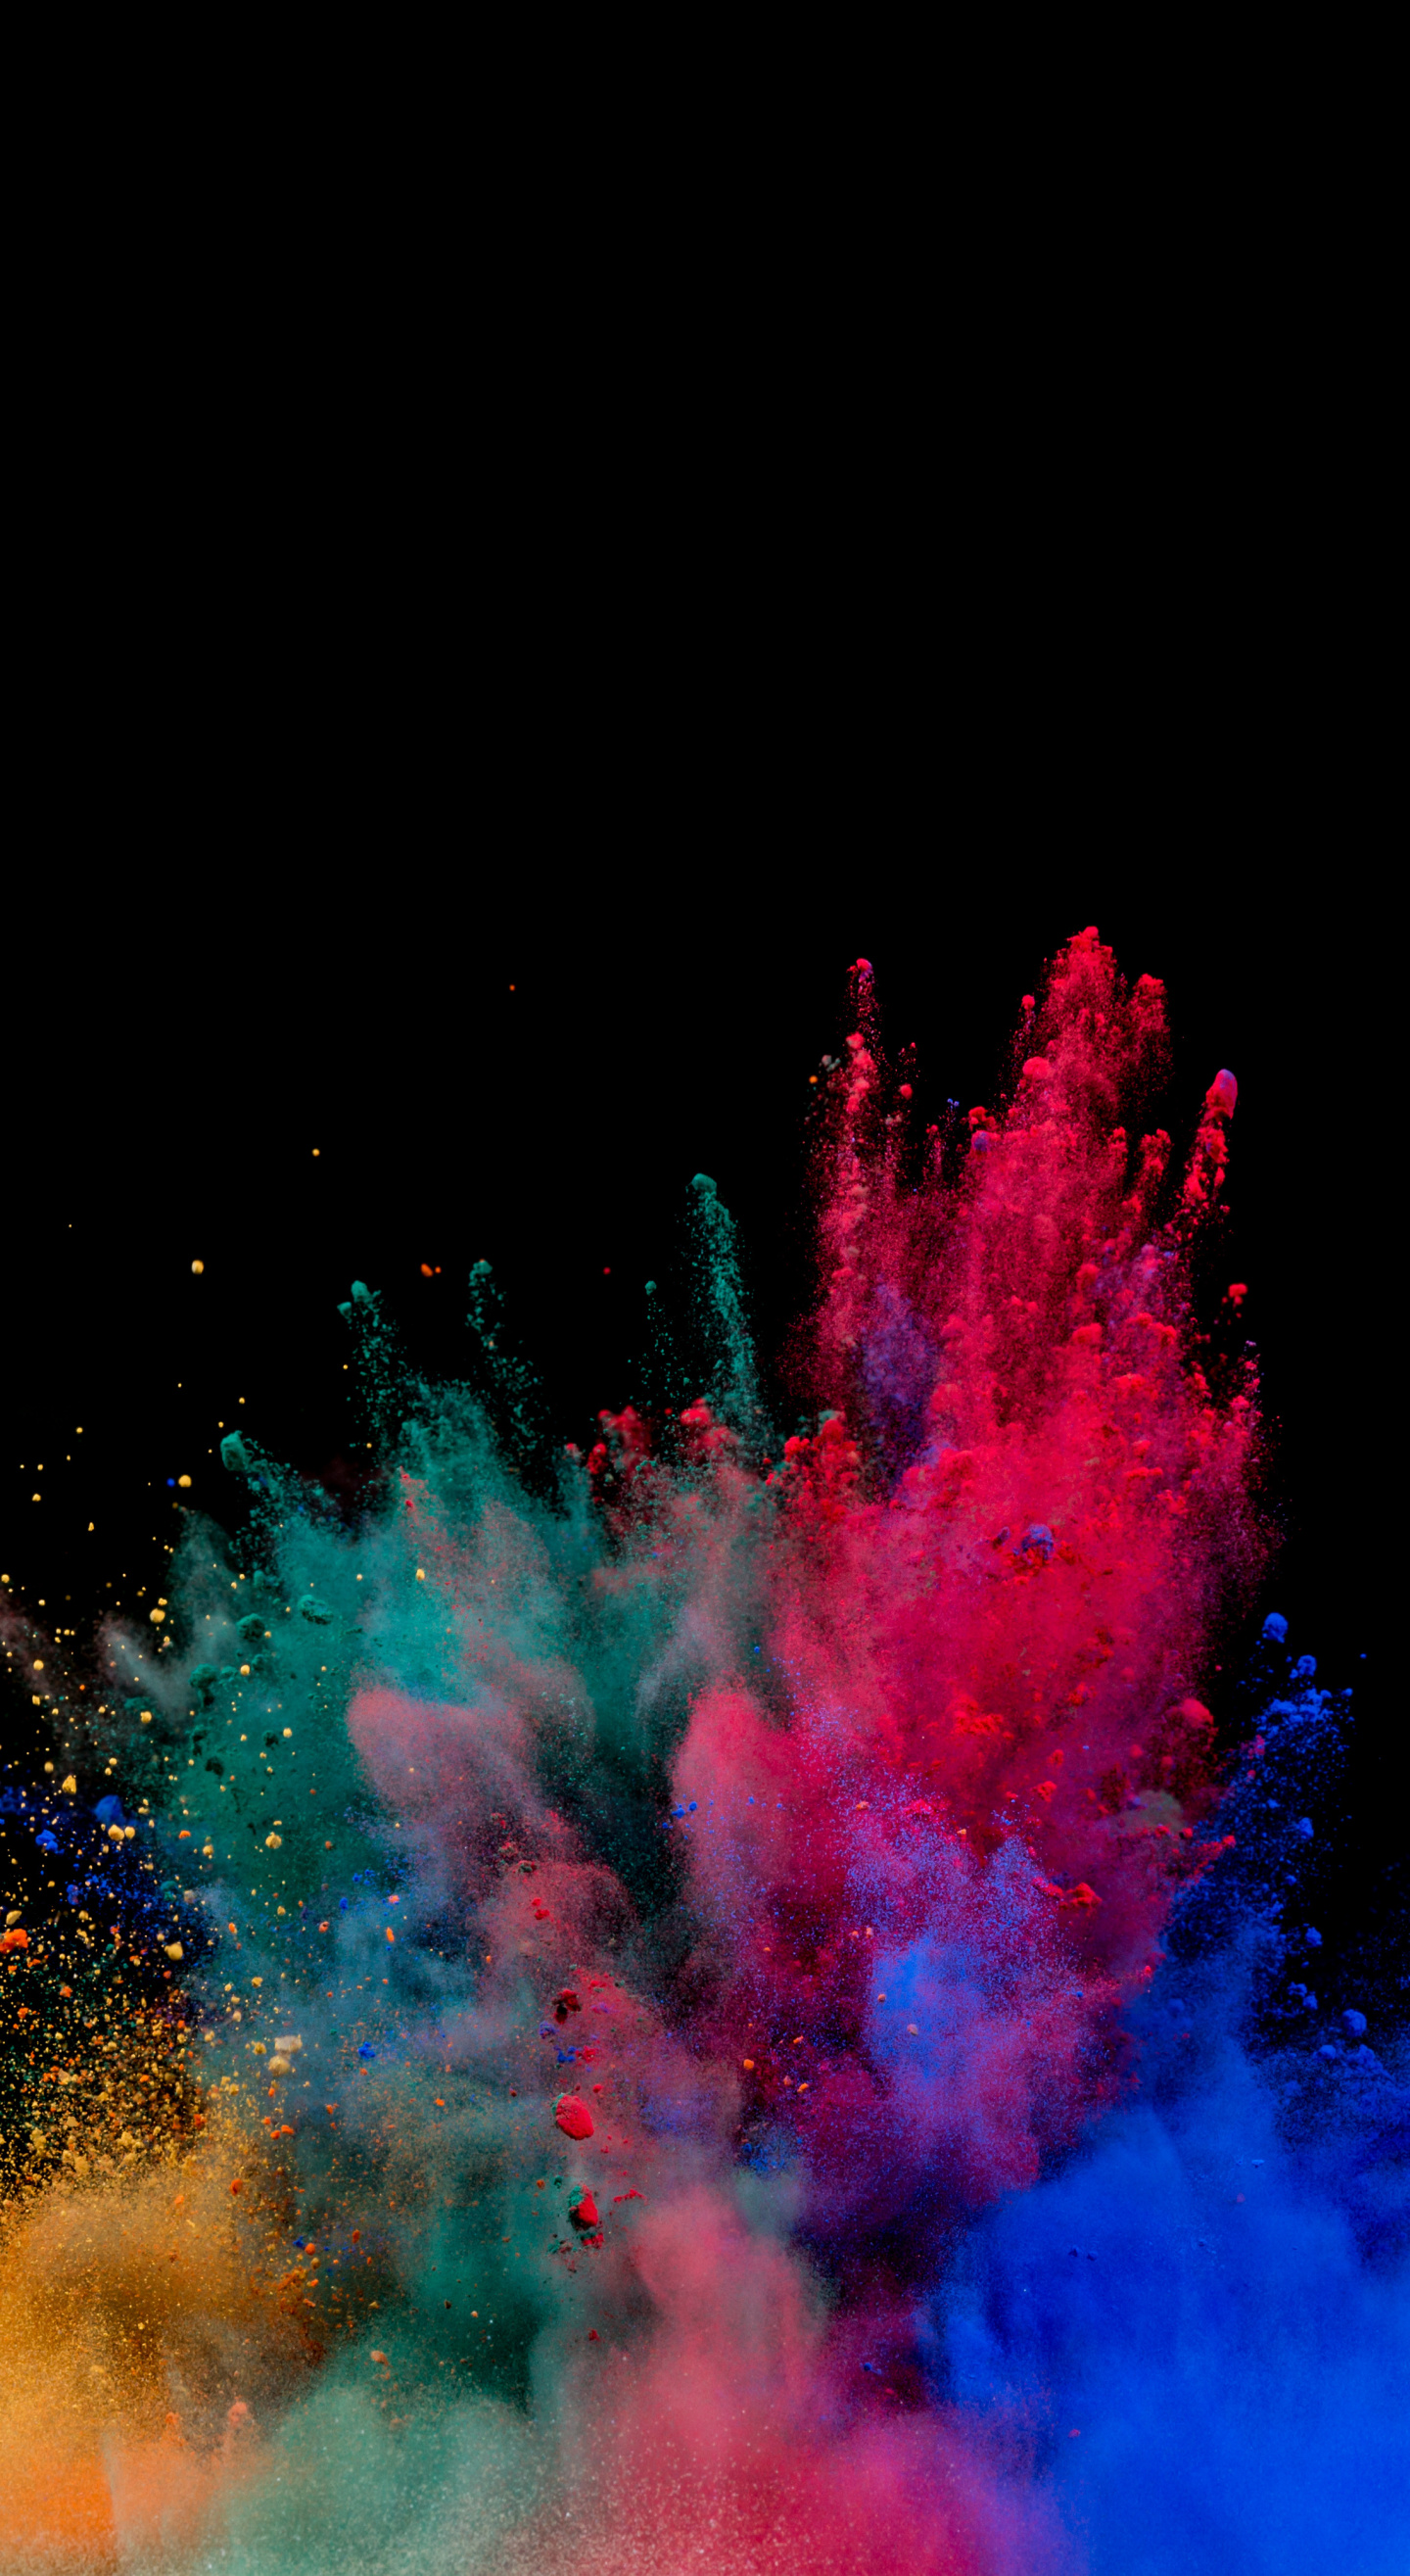 Free Download Download 1440x2630 Wallpaper Colors Blast Explosion Colorful 1440x2630 For Your Desktop Mobile Tablet Explore 31 Samsung Note 8 Wallpapers Samsung Note 8 Wallpapers Samsung Galaxy Note 8